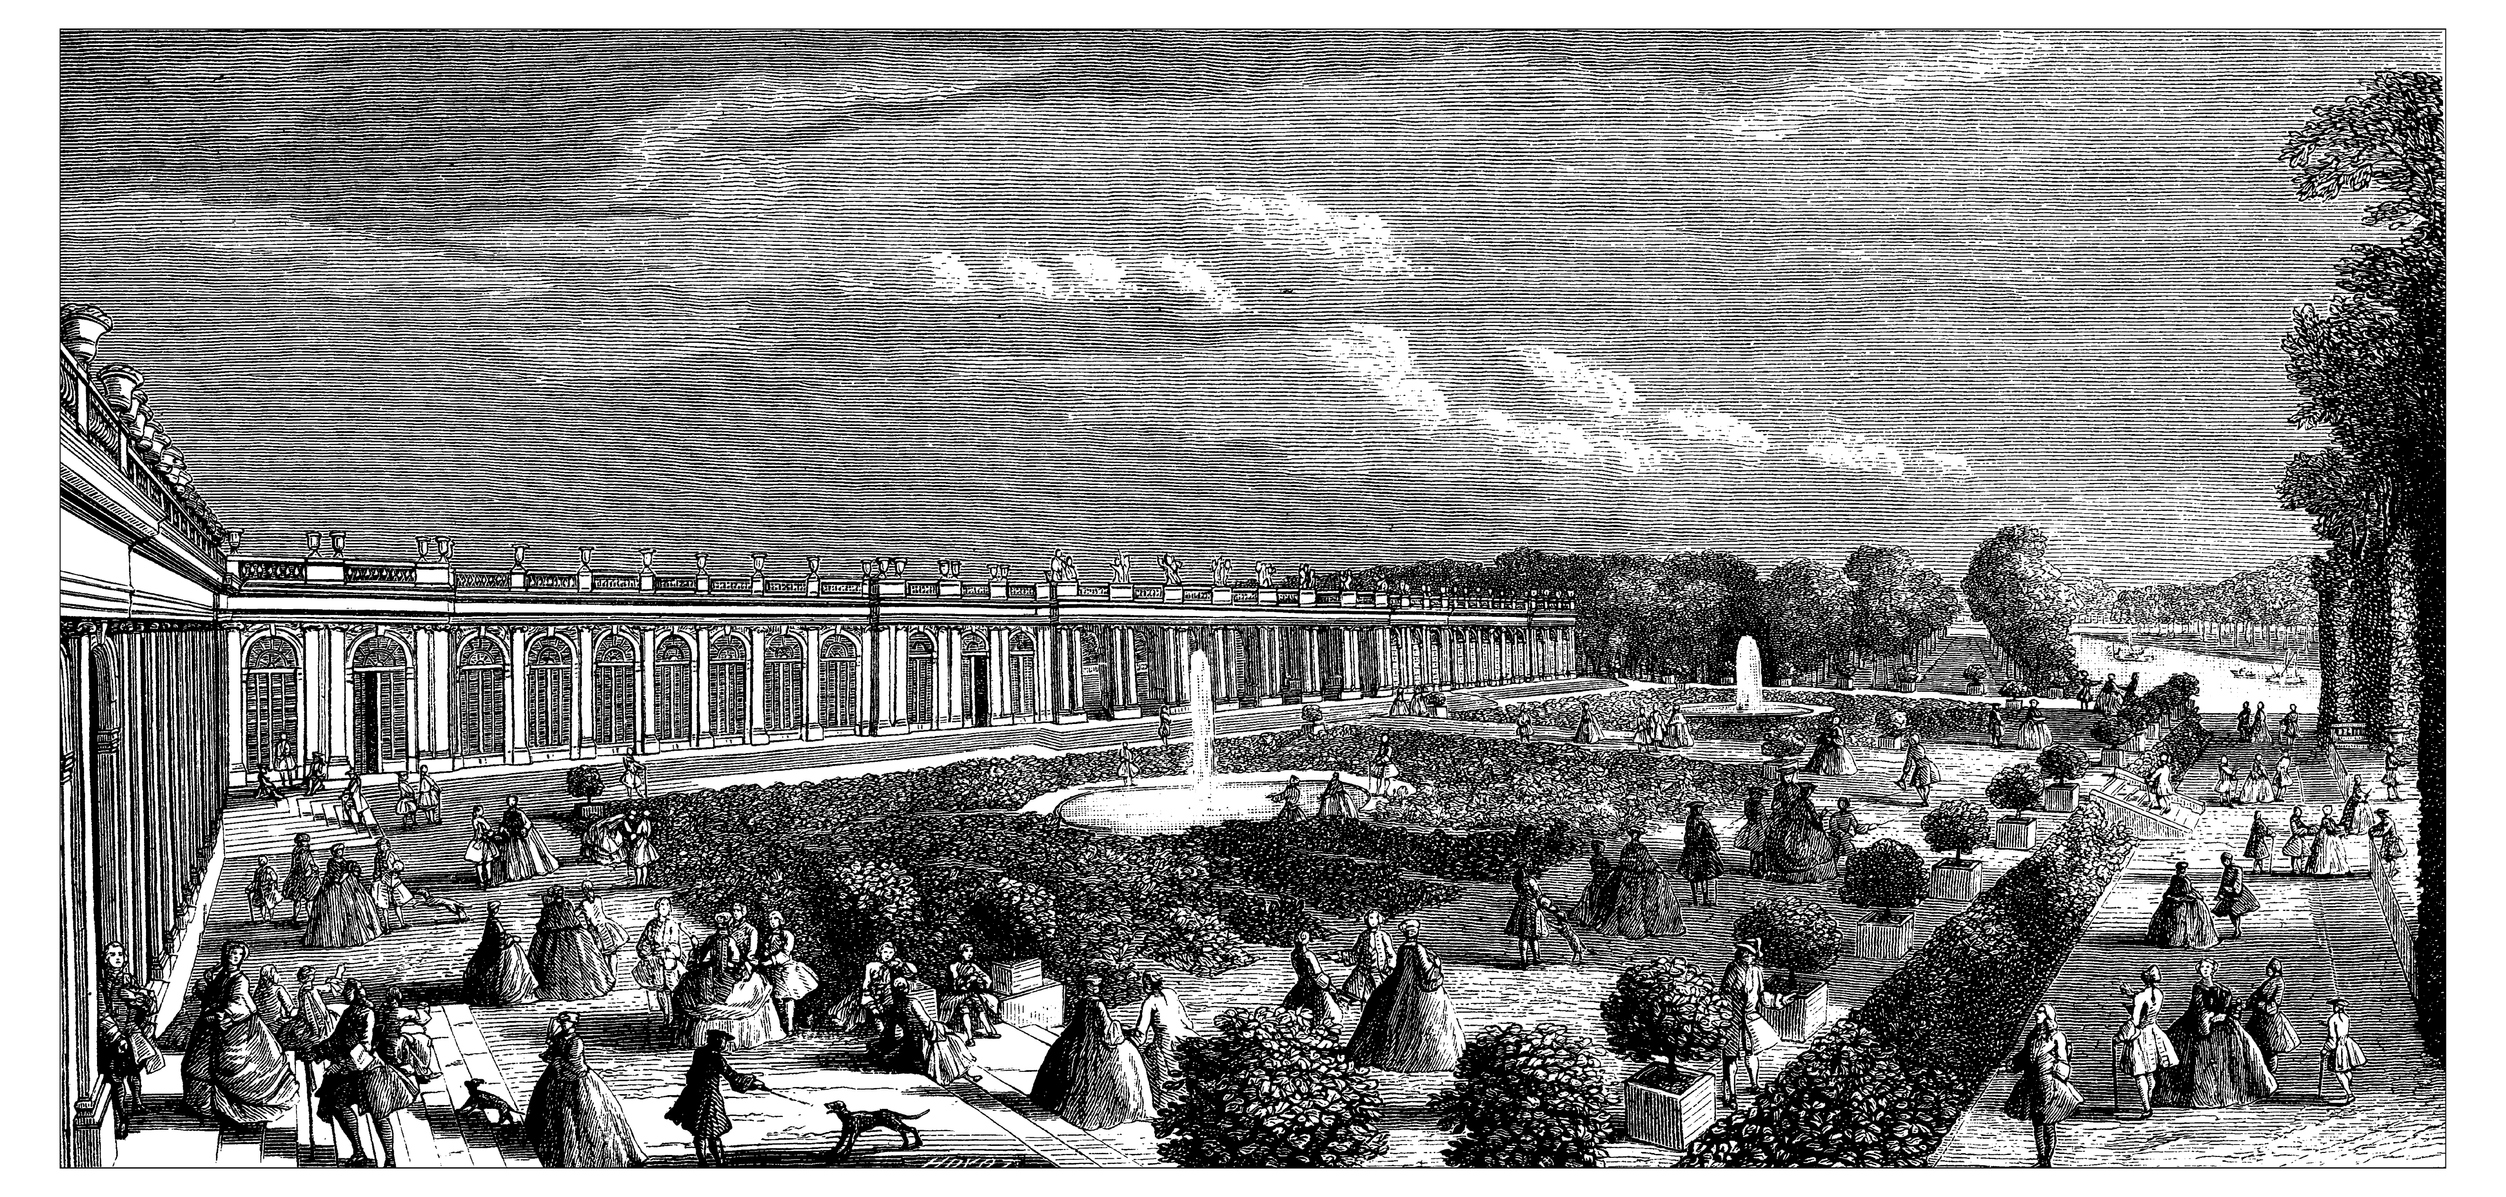 An antique illustration of the Grand Trianon